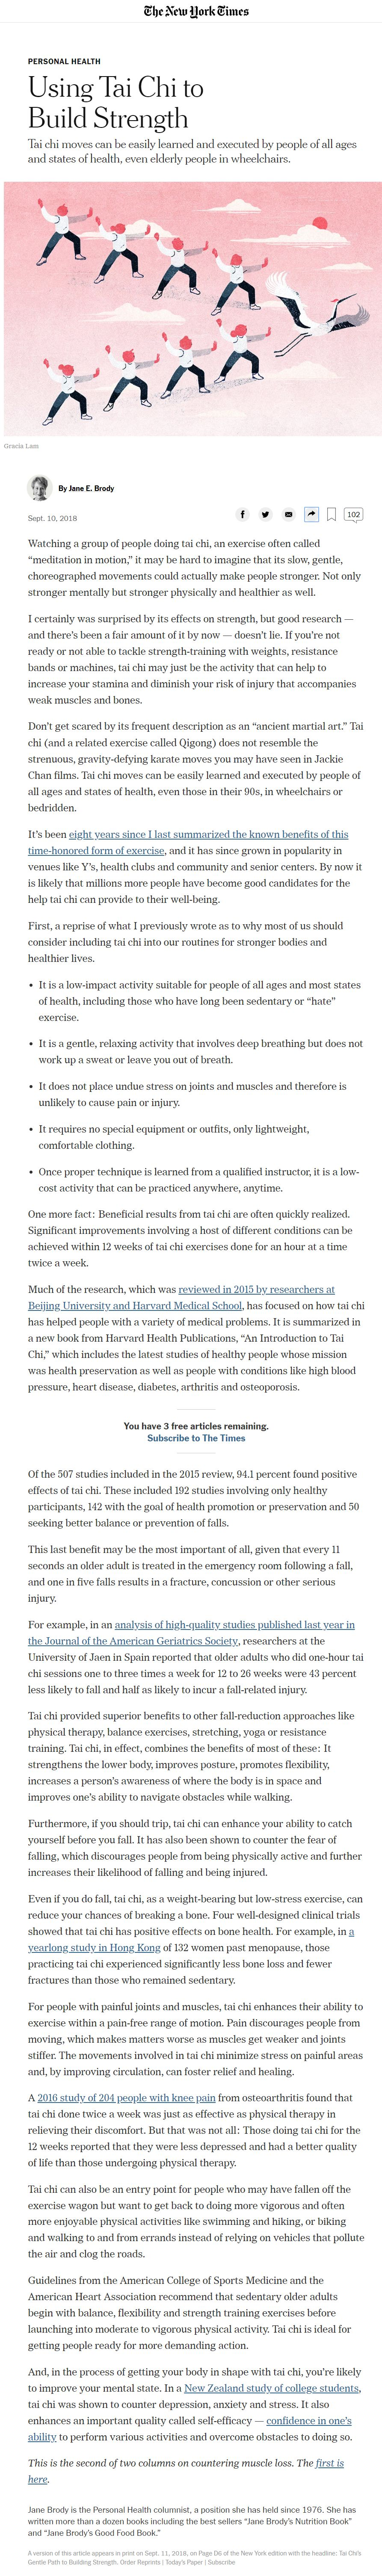 FireShot Pro Screen Capture #129 - 'Using Tai Chi to Build Strength 1 - The New York Times' - www_nytimes_com_2018_09_10_well_move_using-tai-chi-to-buil.jpg